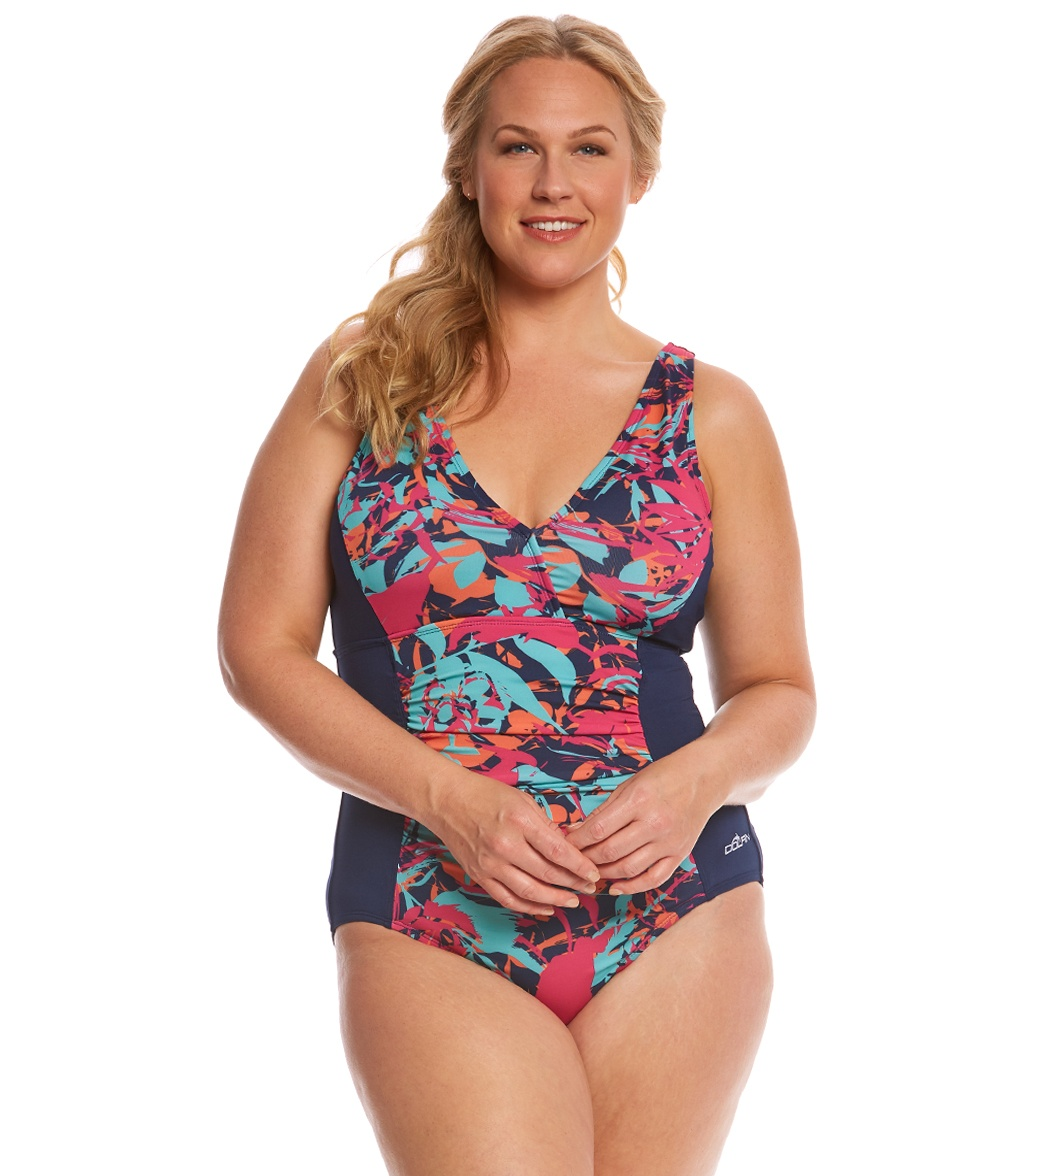 c5e675c263d07 ... Dolfin Aquashape Women s Plus Size Eden Shirred One Piece Swimsuit.  MODEL MEASUREMENTS